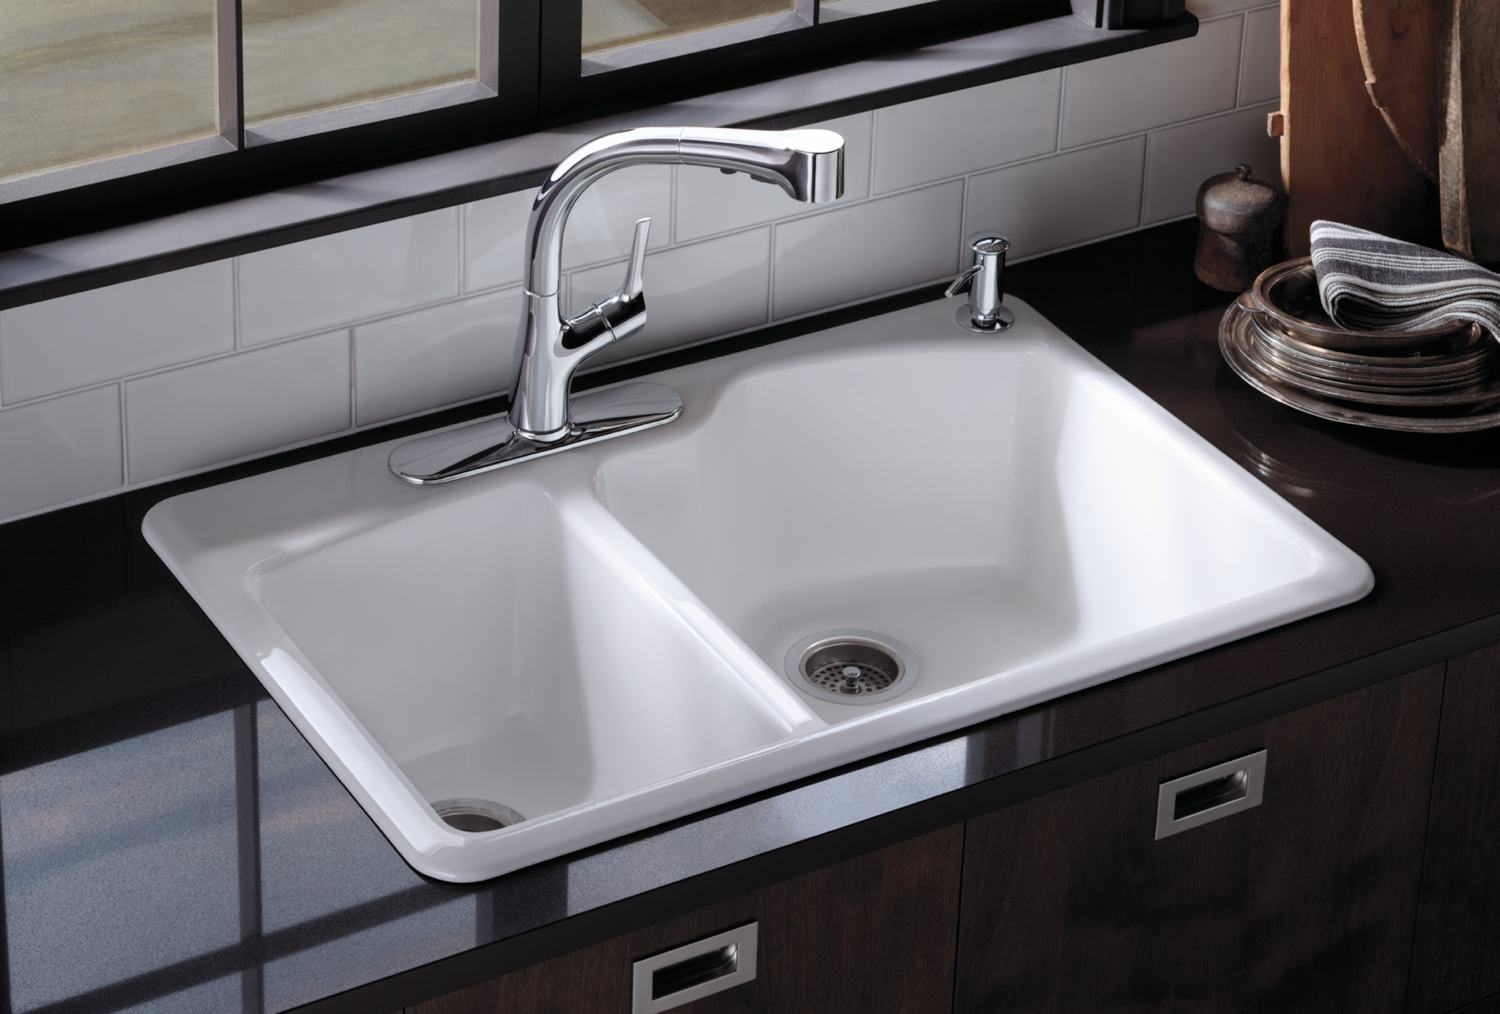 White Kitchen Sink With Chrome Faucet